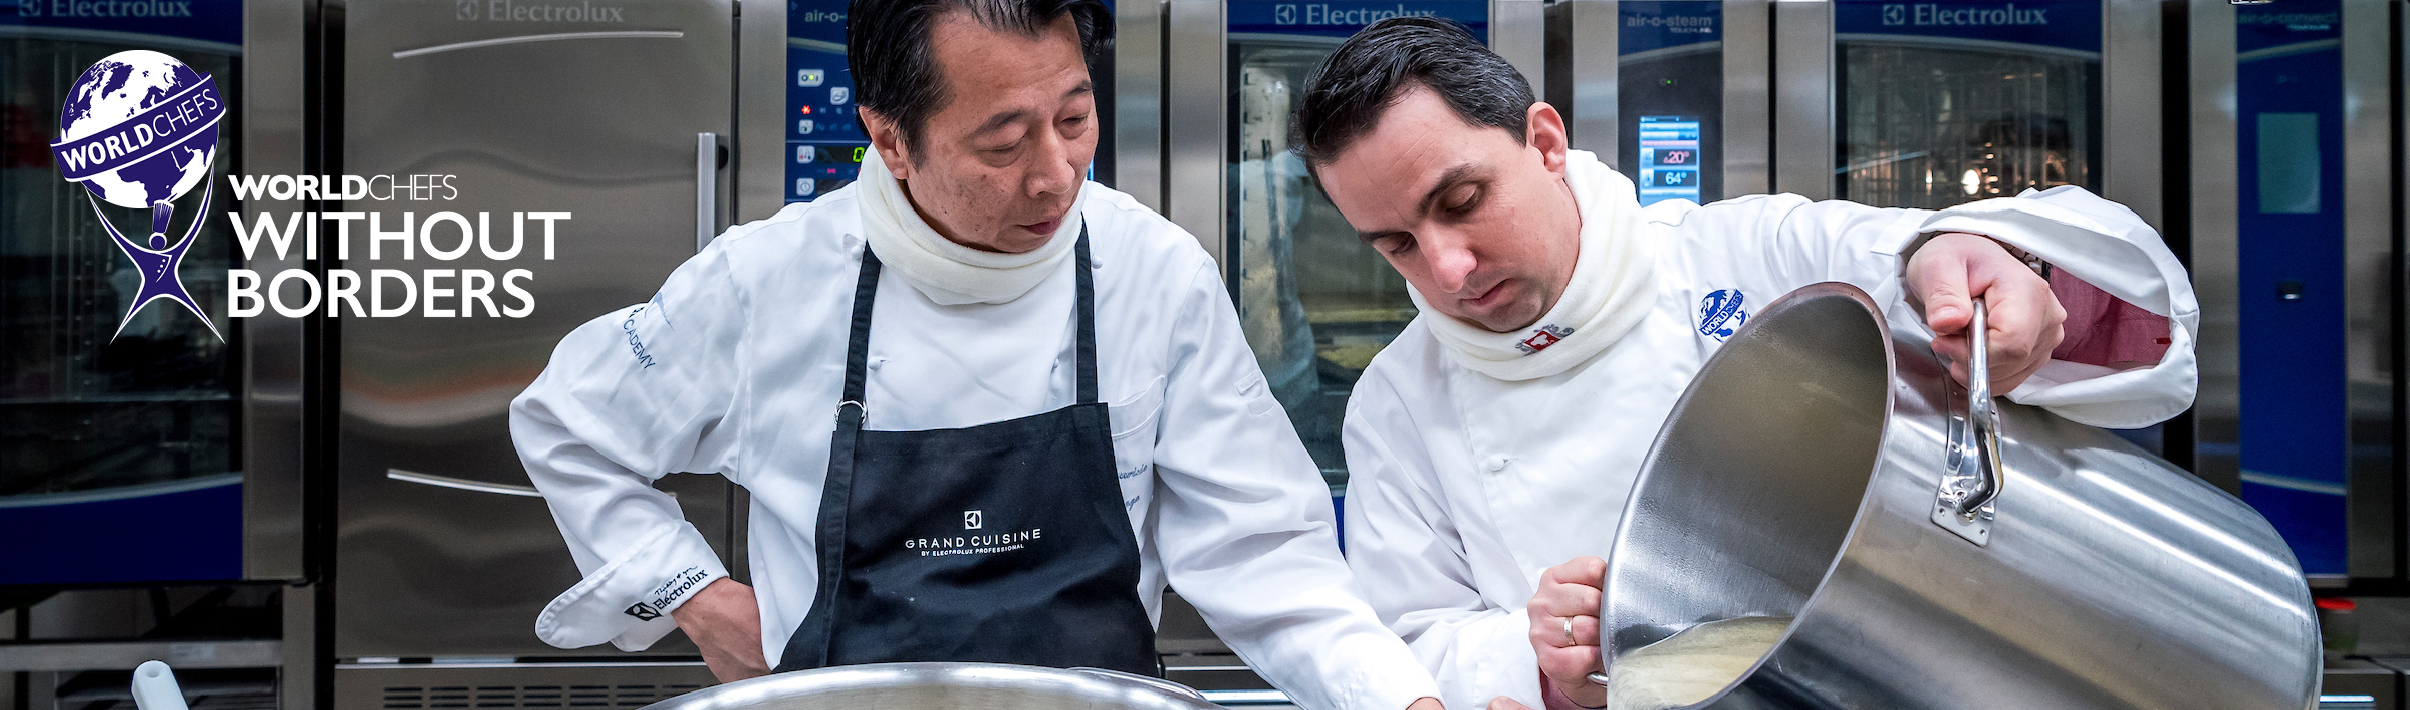 World chefs without borders